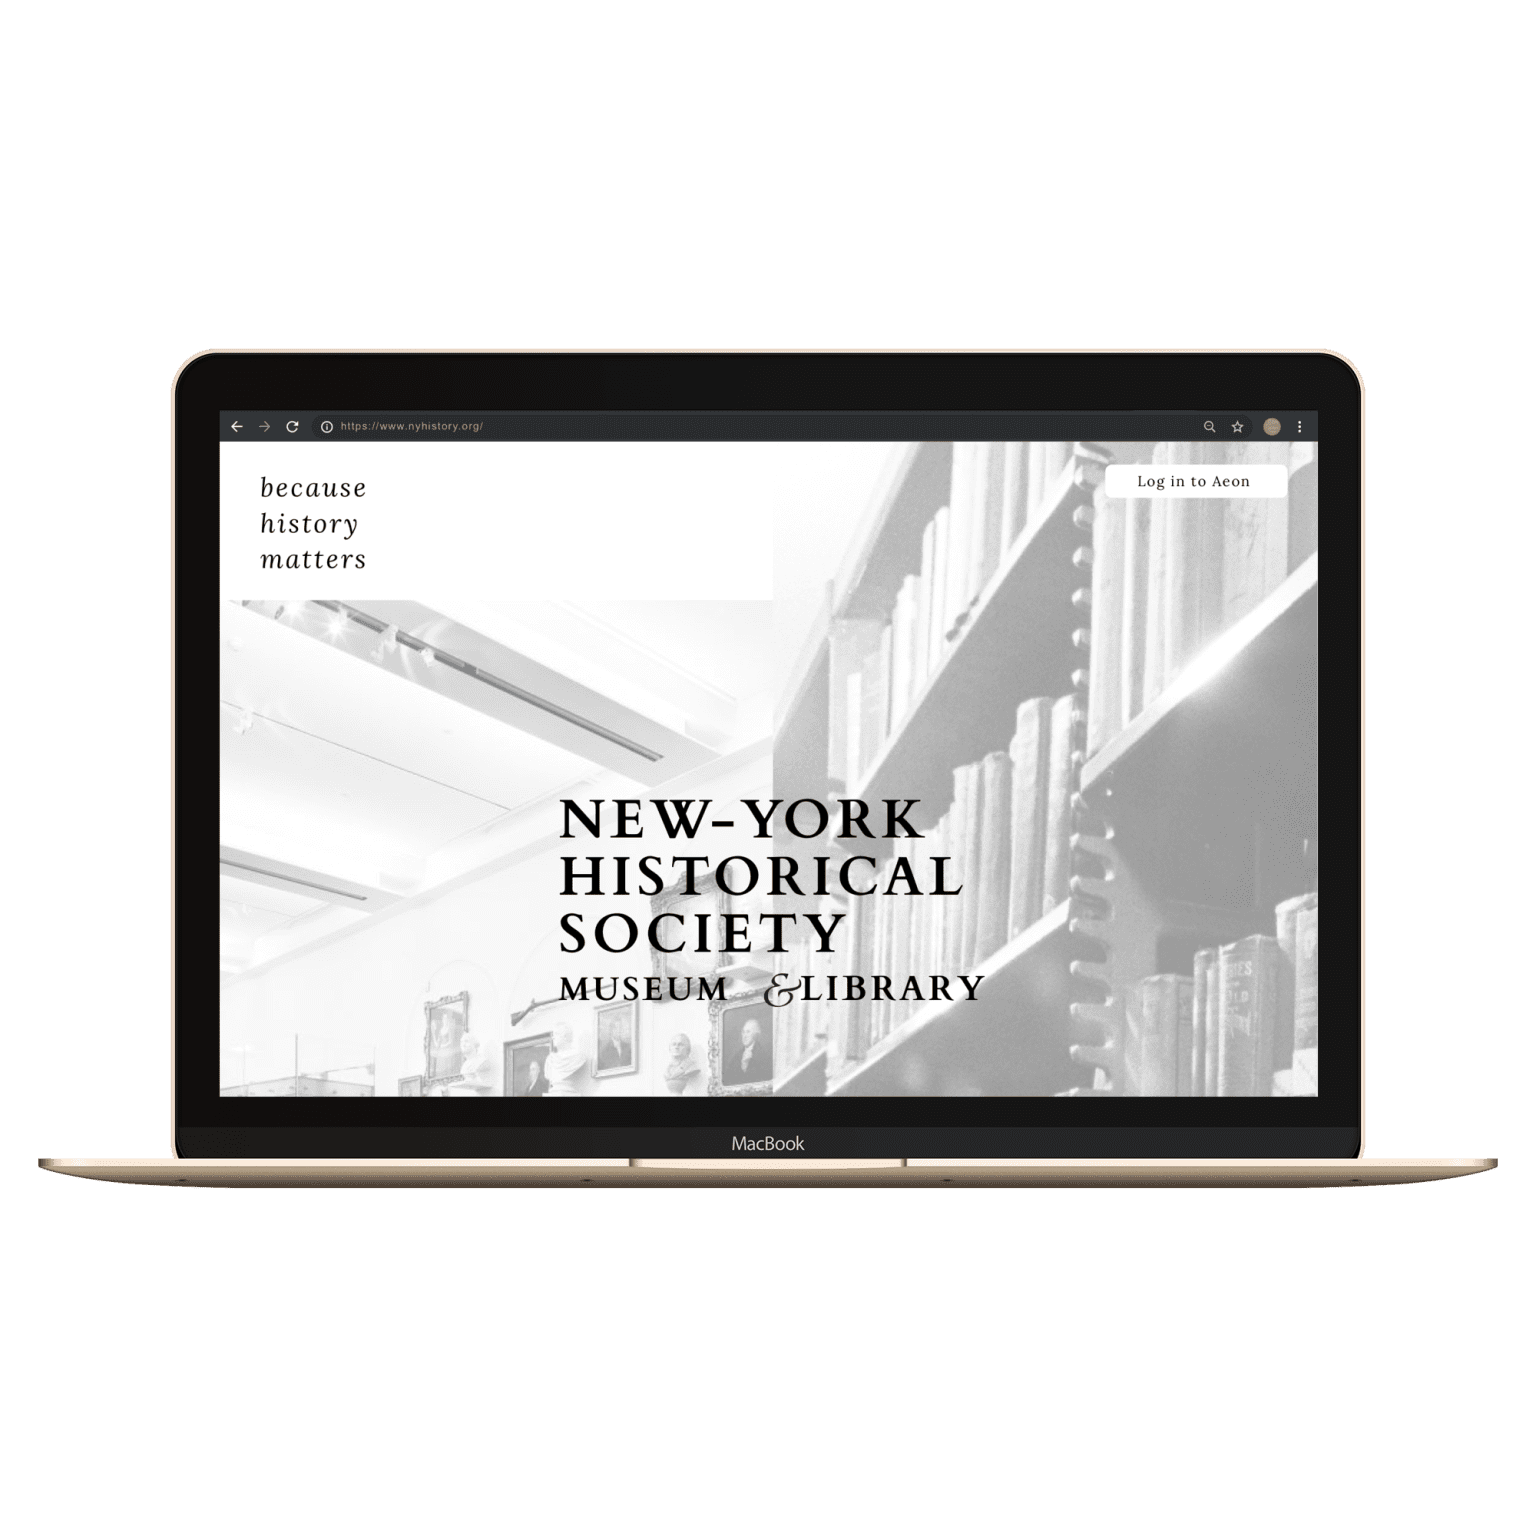 New York Historical Society : Museum & Library REDESIGN